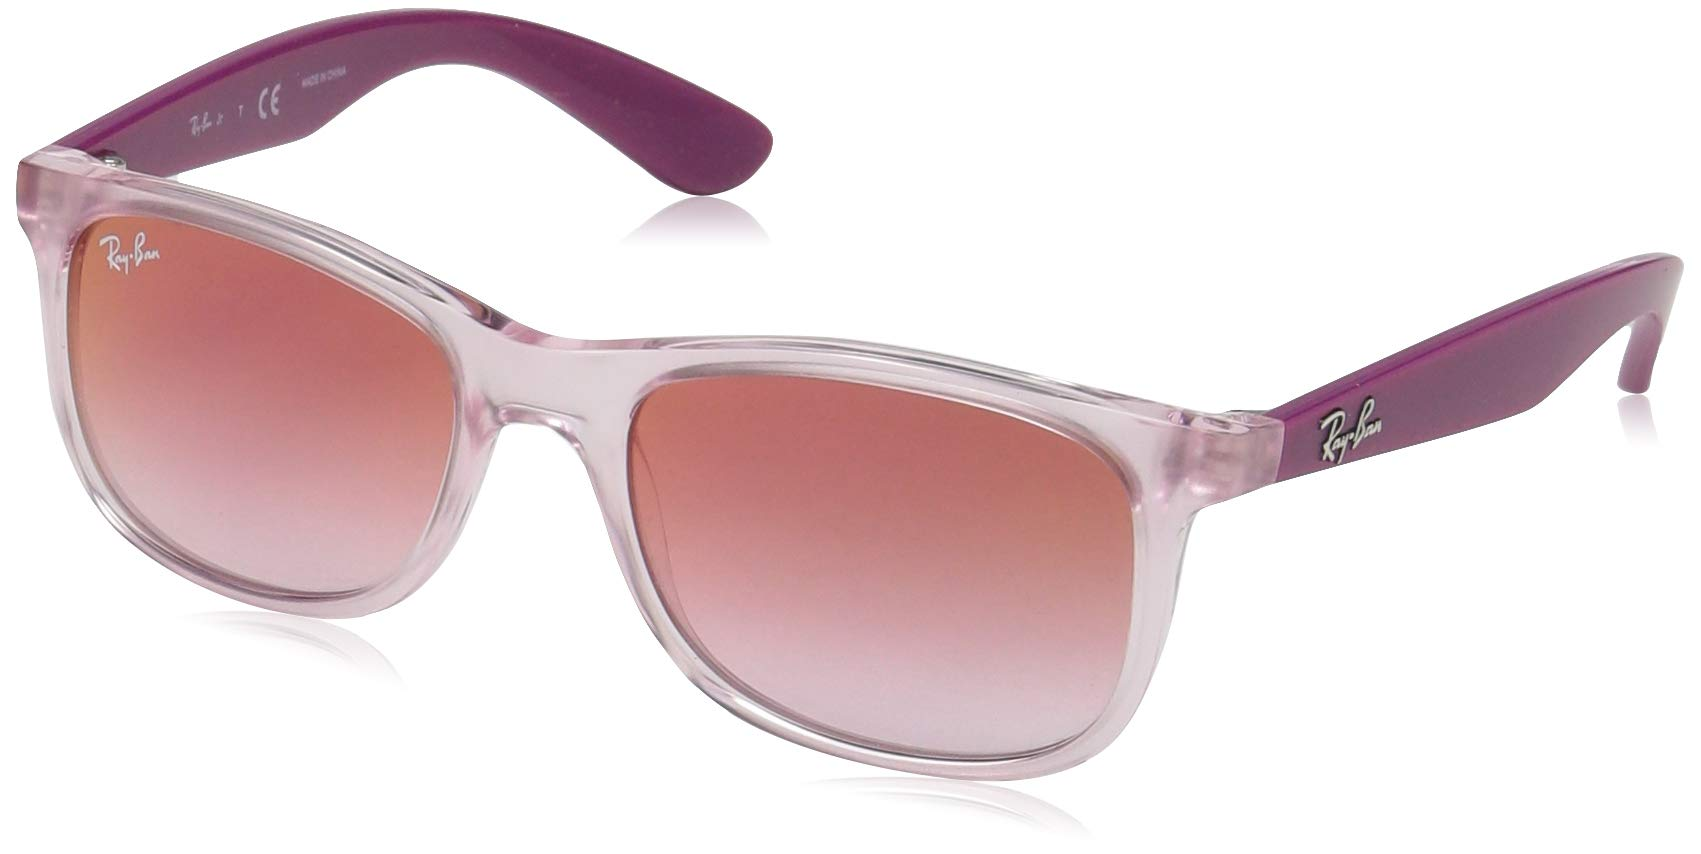 RAY-BAN JUNIOR Kids' RJ9062S Rectangular Kids Sunglasses, Transparent Pink/Red Gradient Mirror, 48 mm by RAY-BAN JUNIOR